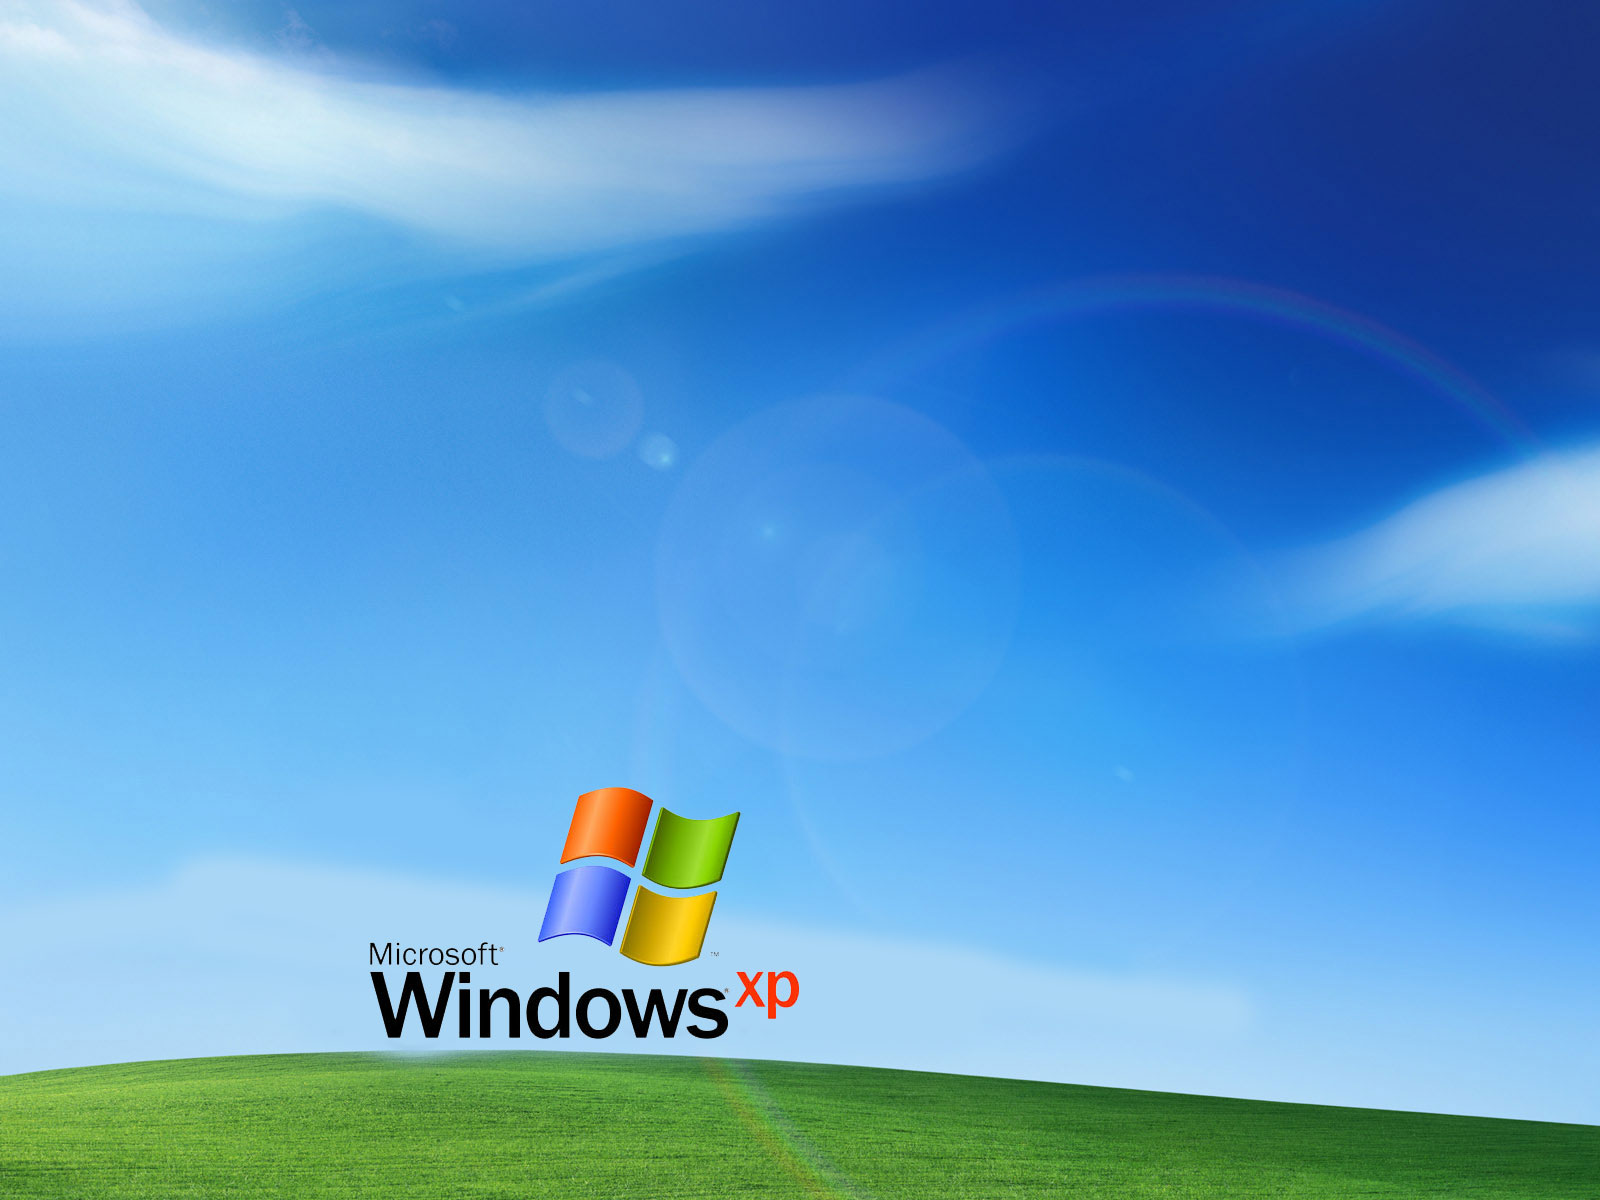 Download 45 hd windows xp wallpapers for free for Window background